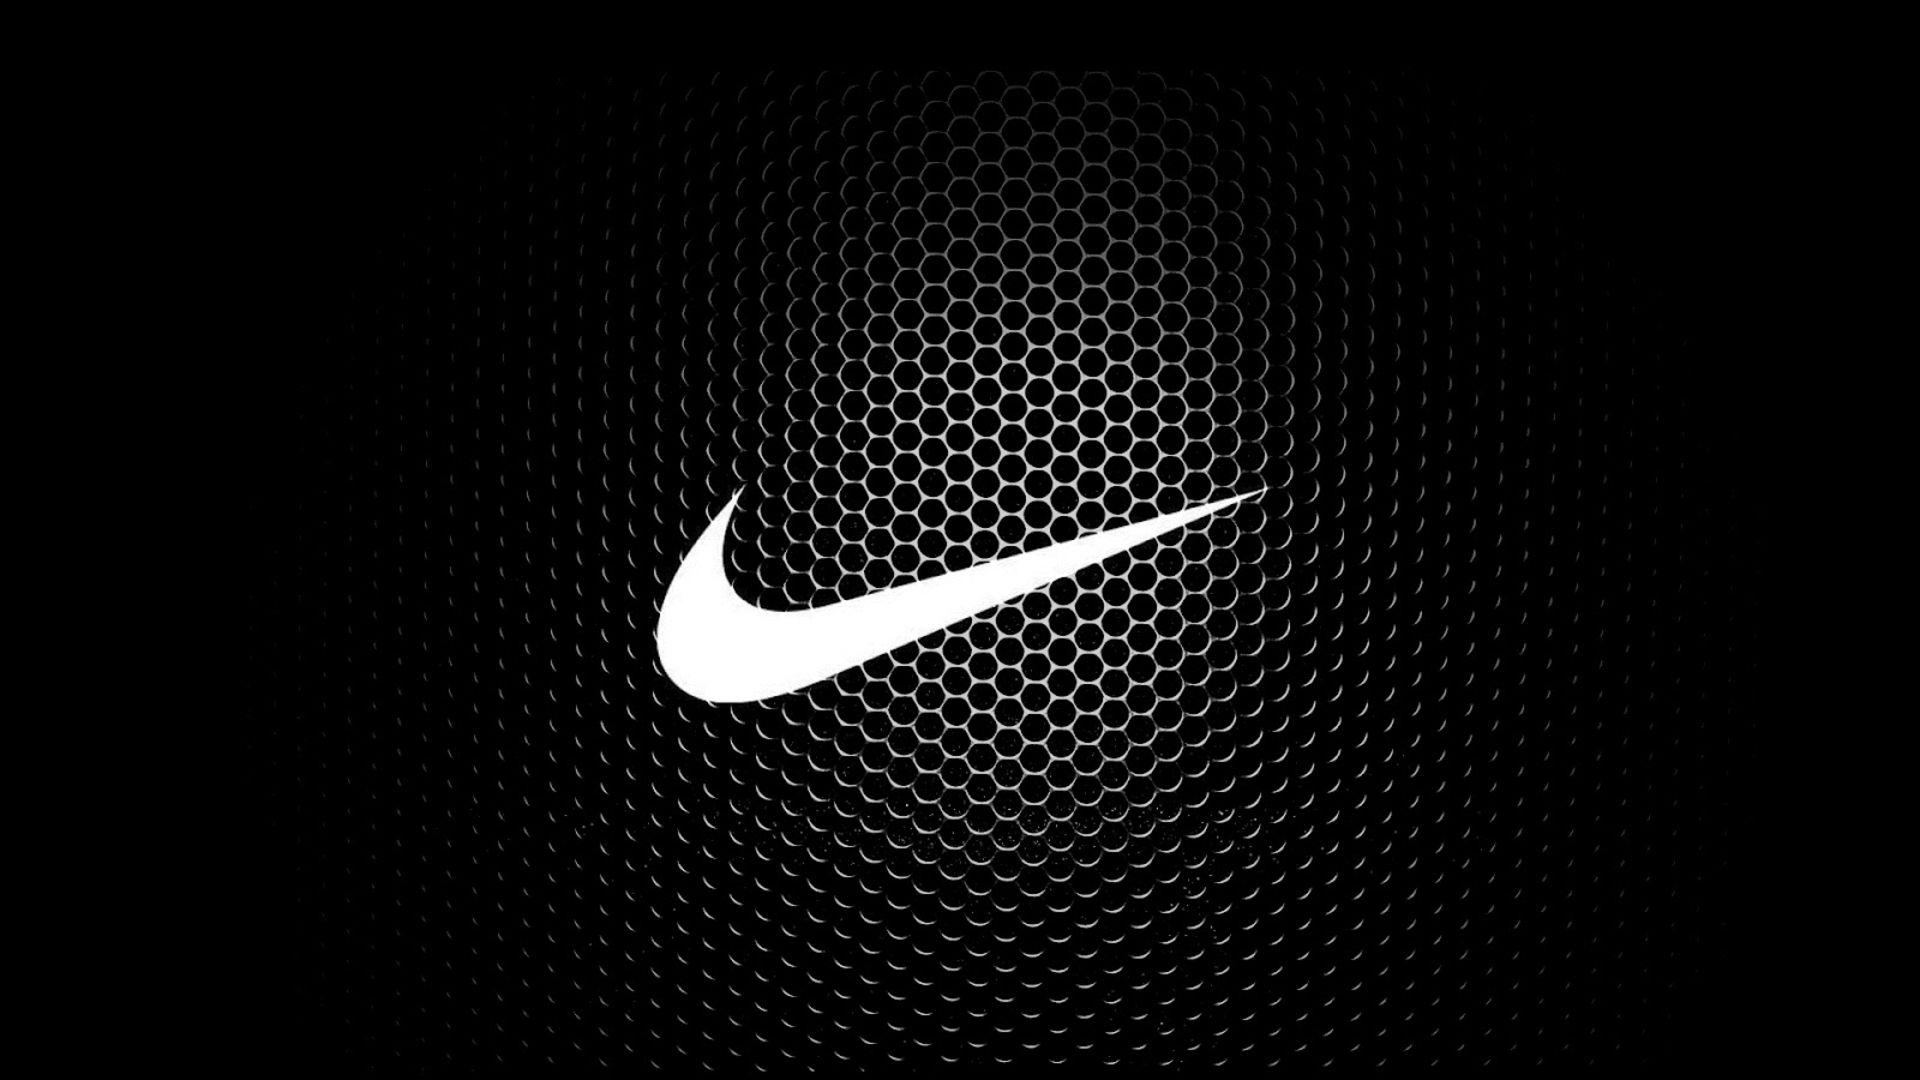 Hd wallpaper nike - 1378724 Nike Wallpaper Hd Free Wallpapers Backgrounds Images Fhd